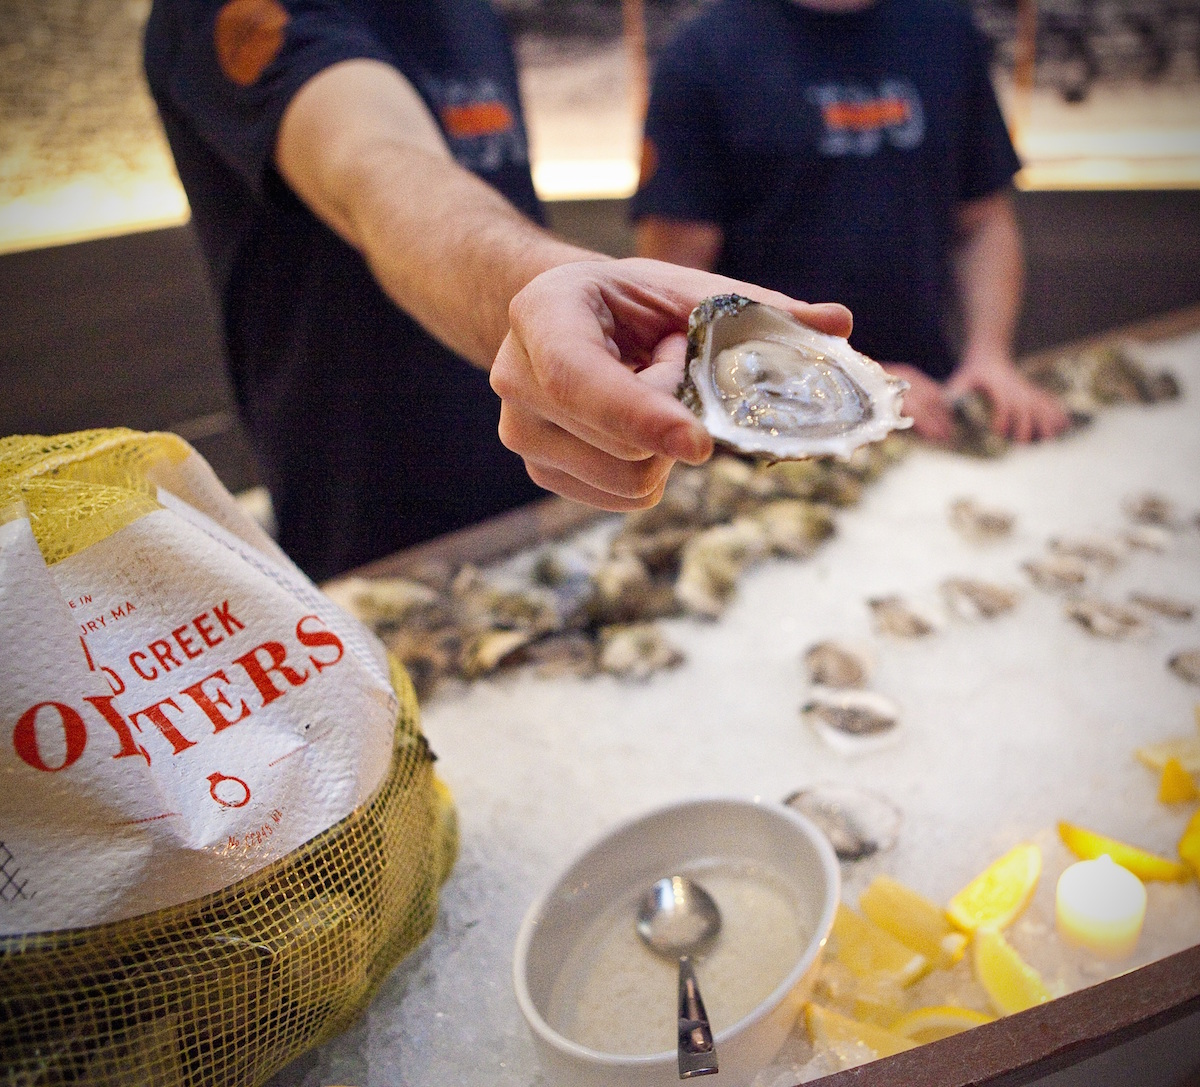 Photograph courtesy of Island Creek Oyster